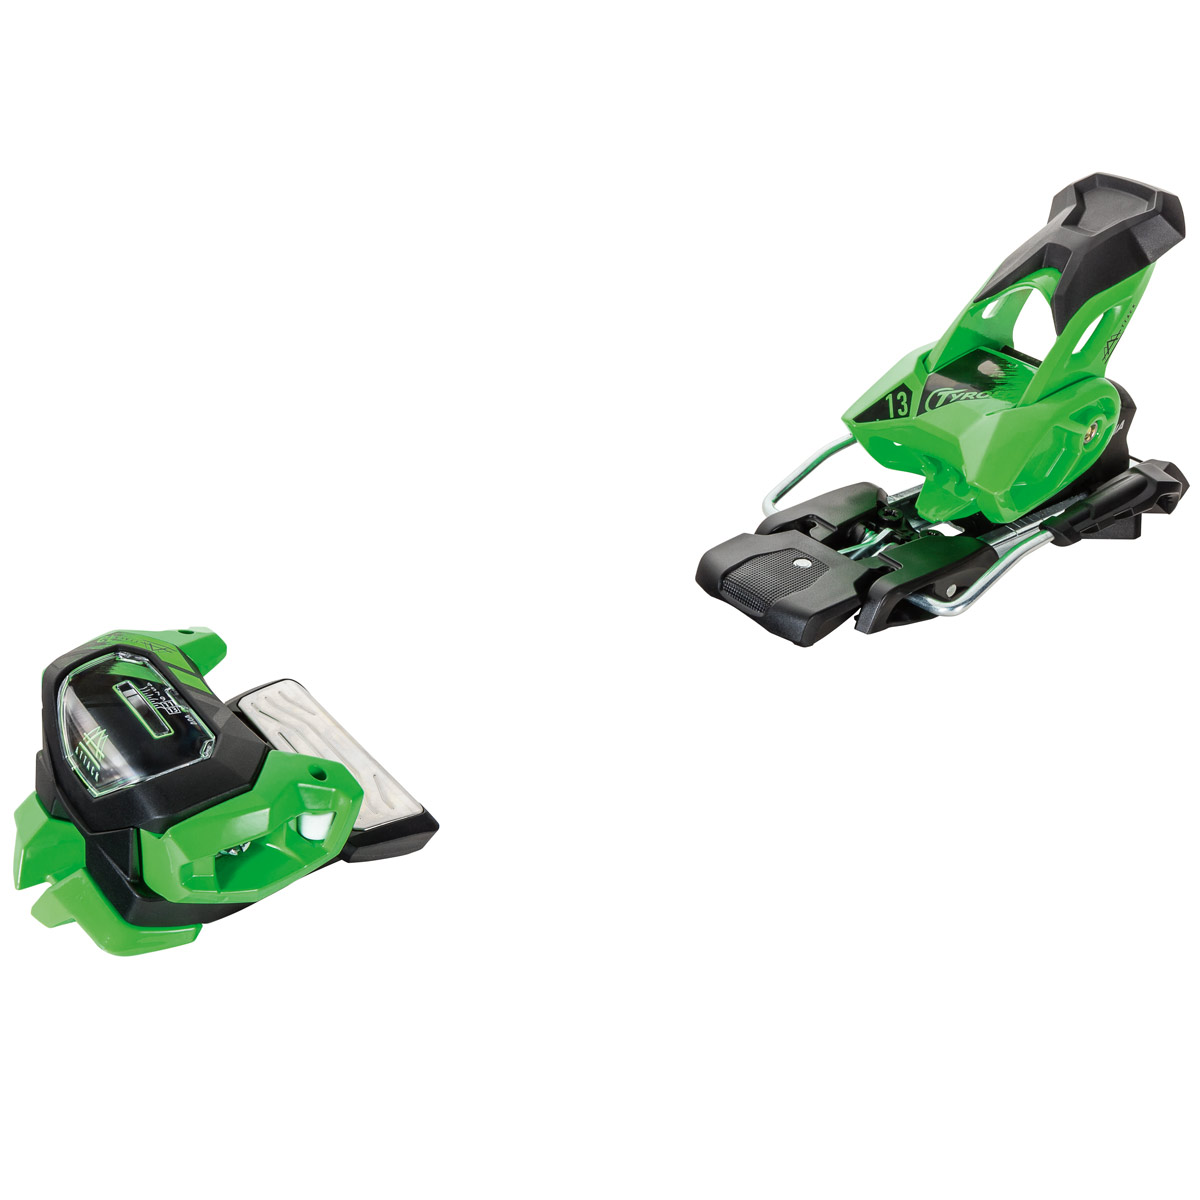 Tyrolia Attack 13 GW Ski Bindings On Sale